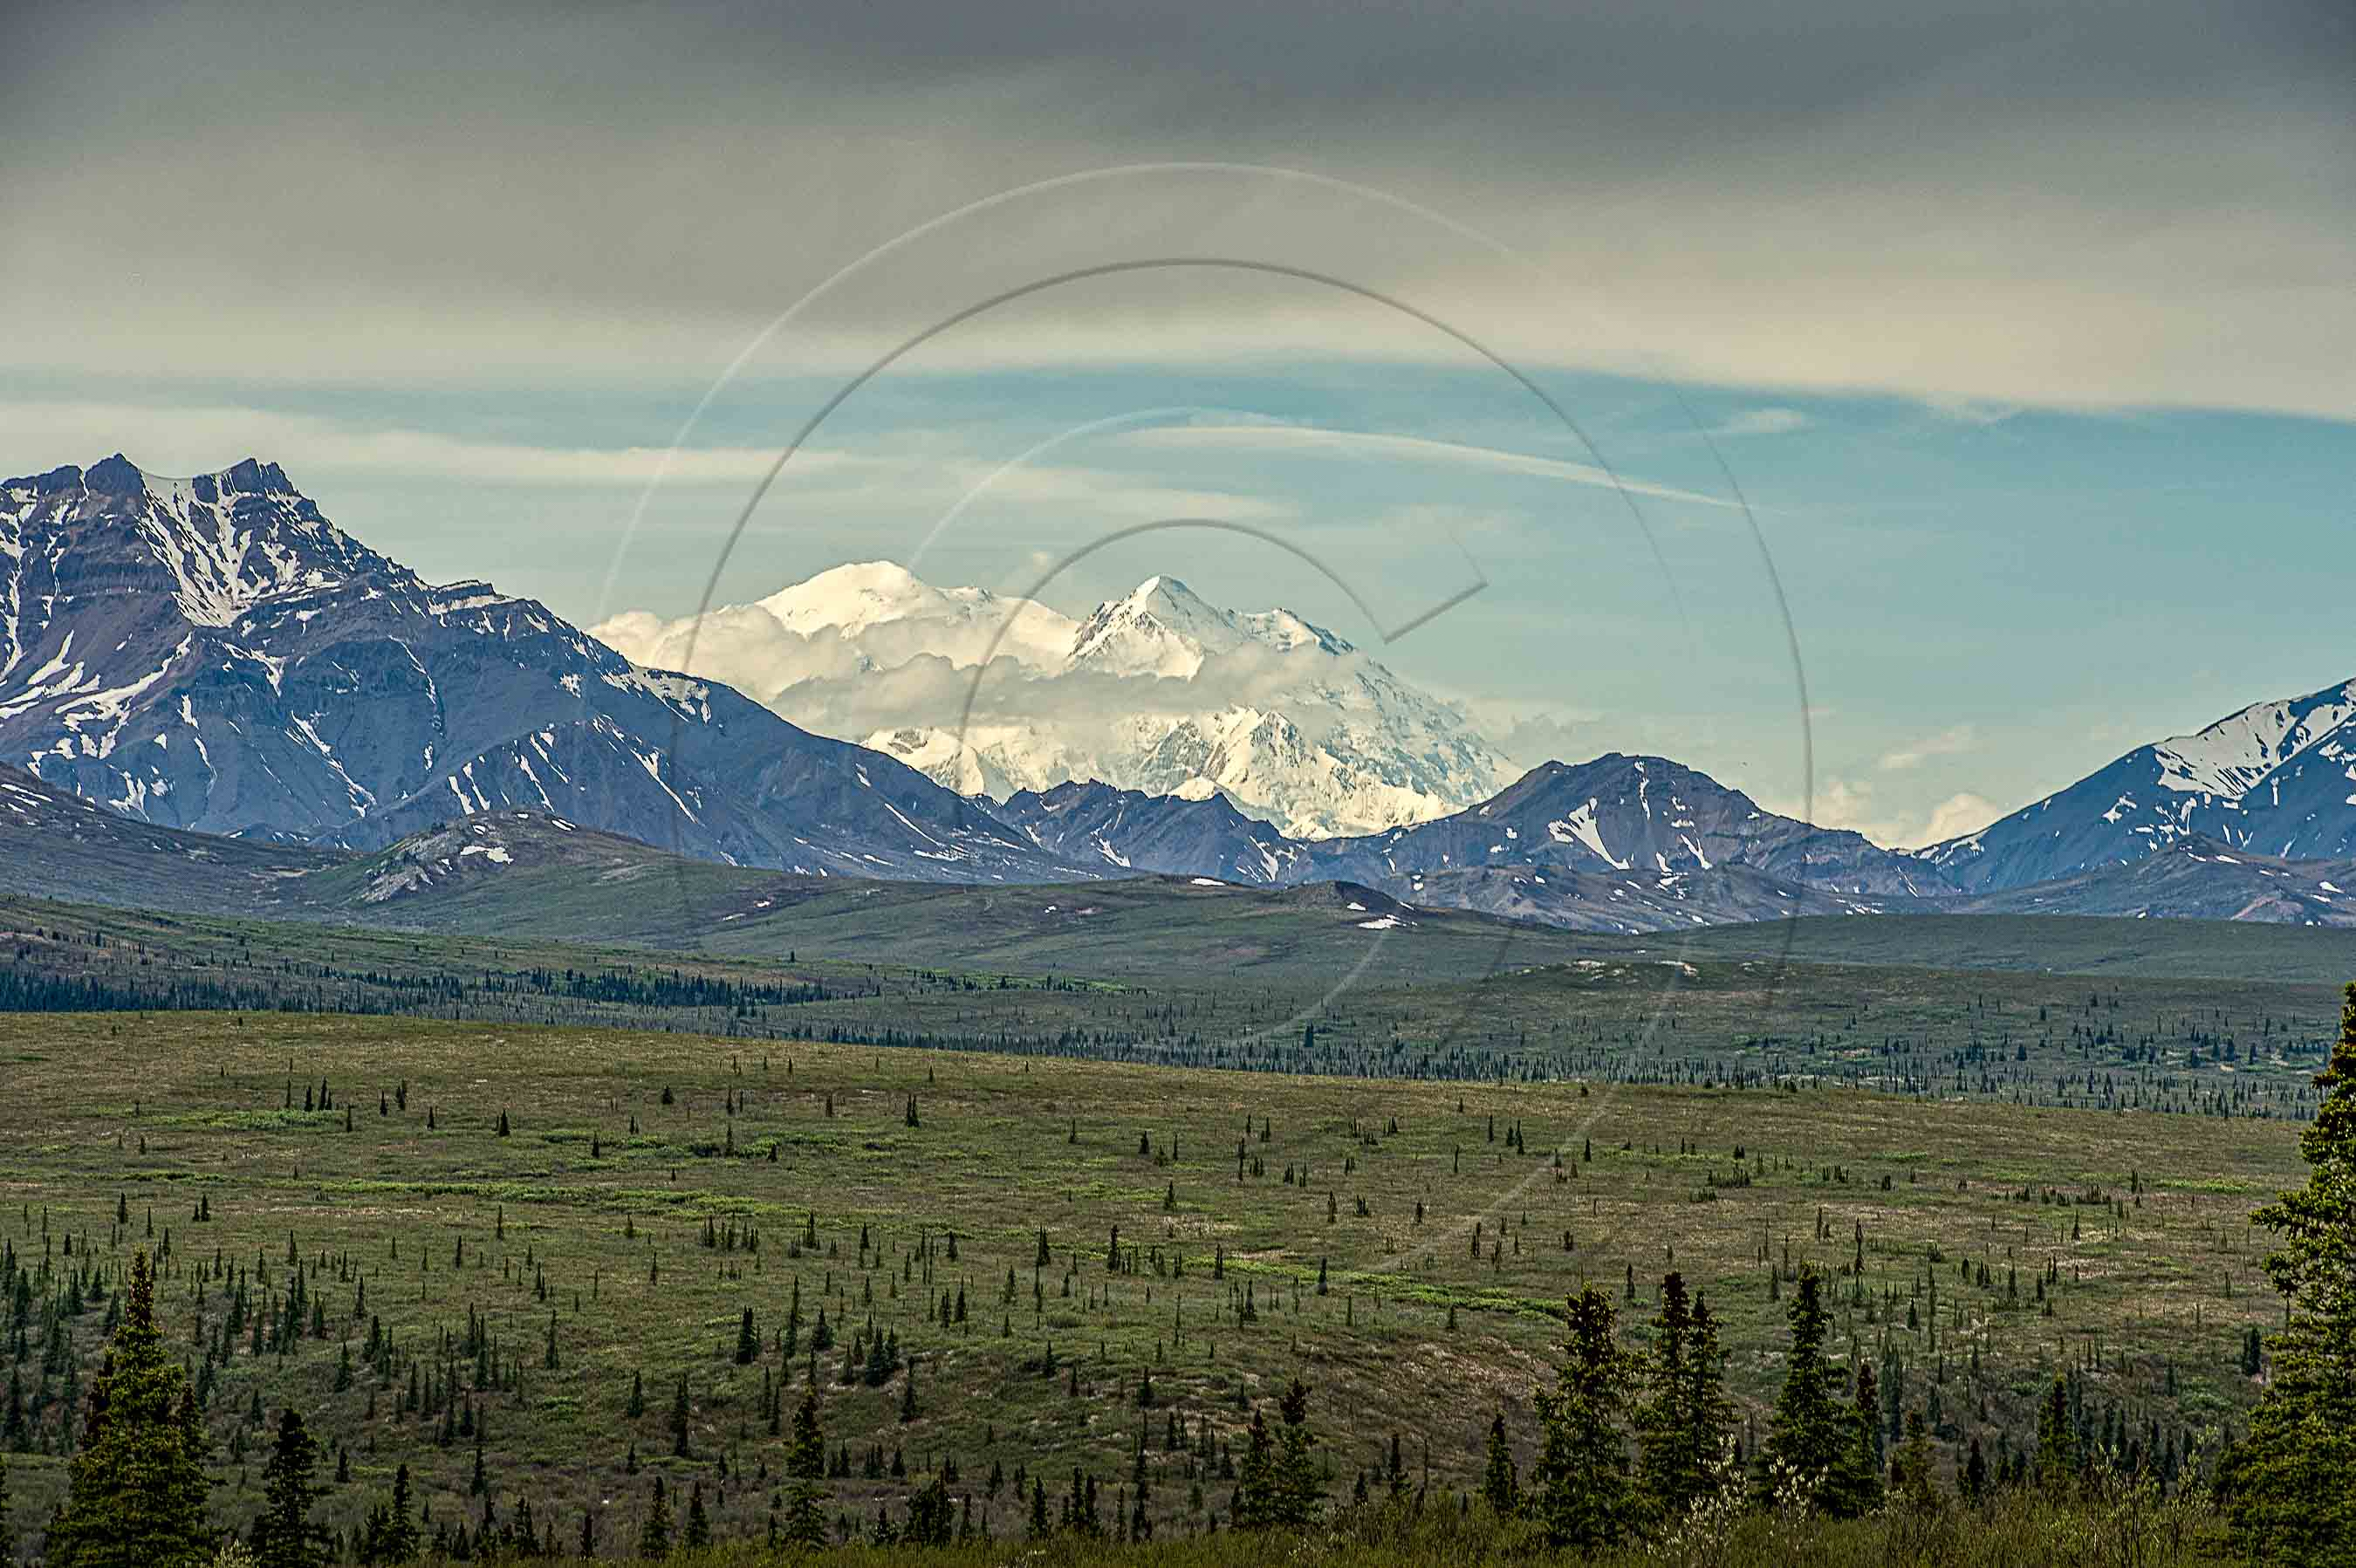 MOUNT DENALI (1 of 1)